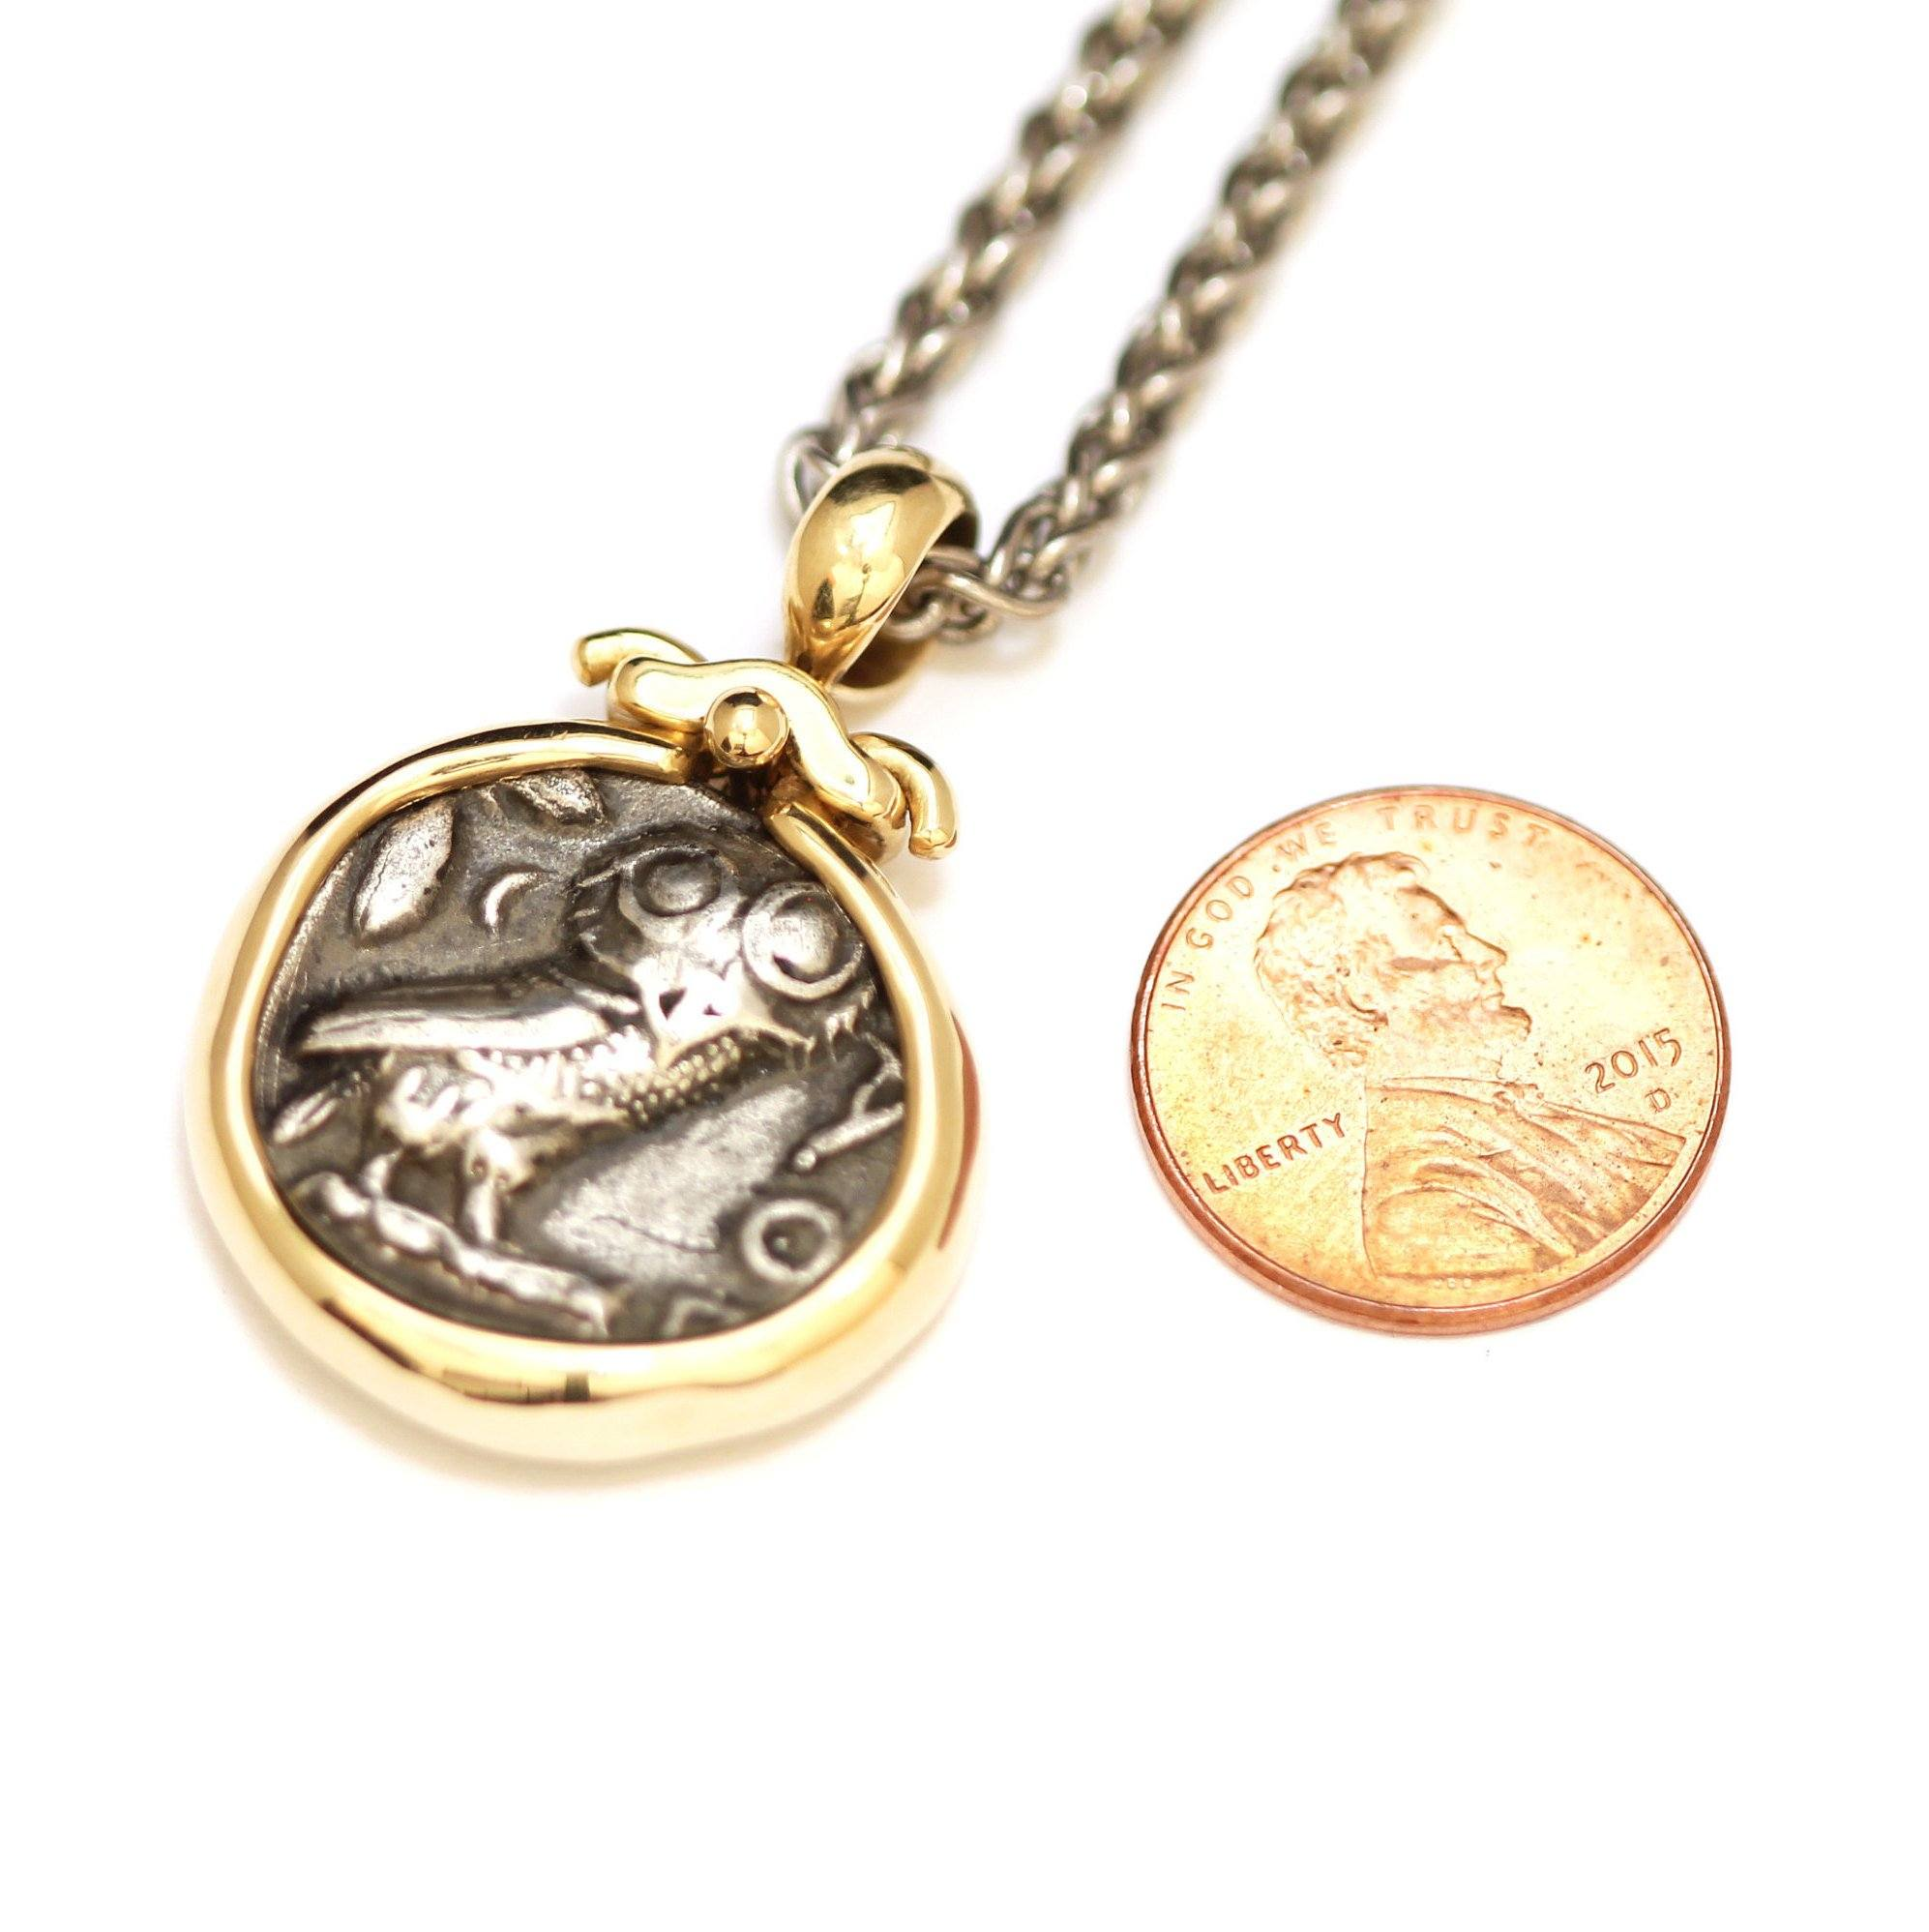 Athena Owl,  Attica 14k Solid Gold Pendant, Coin Pendant, ID12697 - Erez Ancient Coin Jewelry